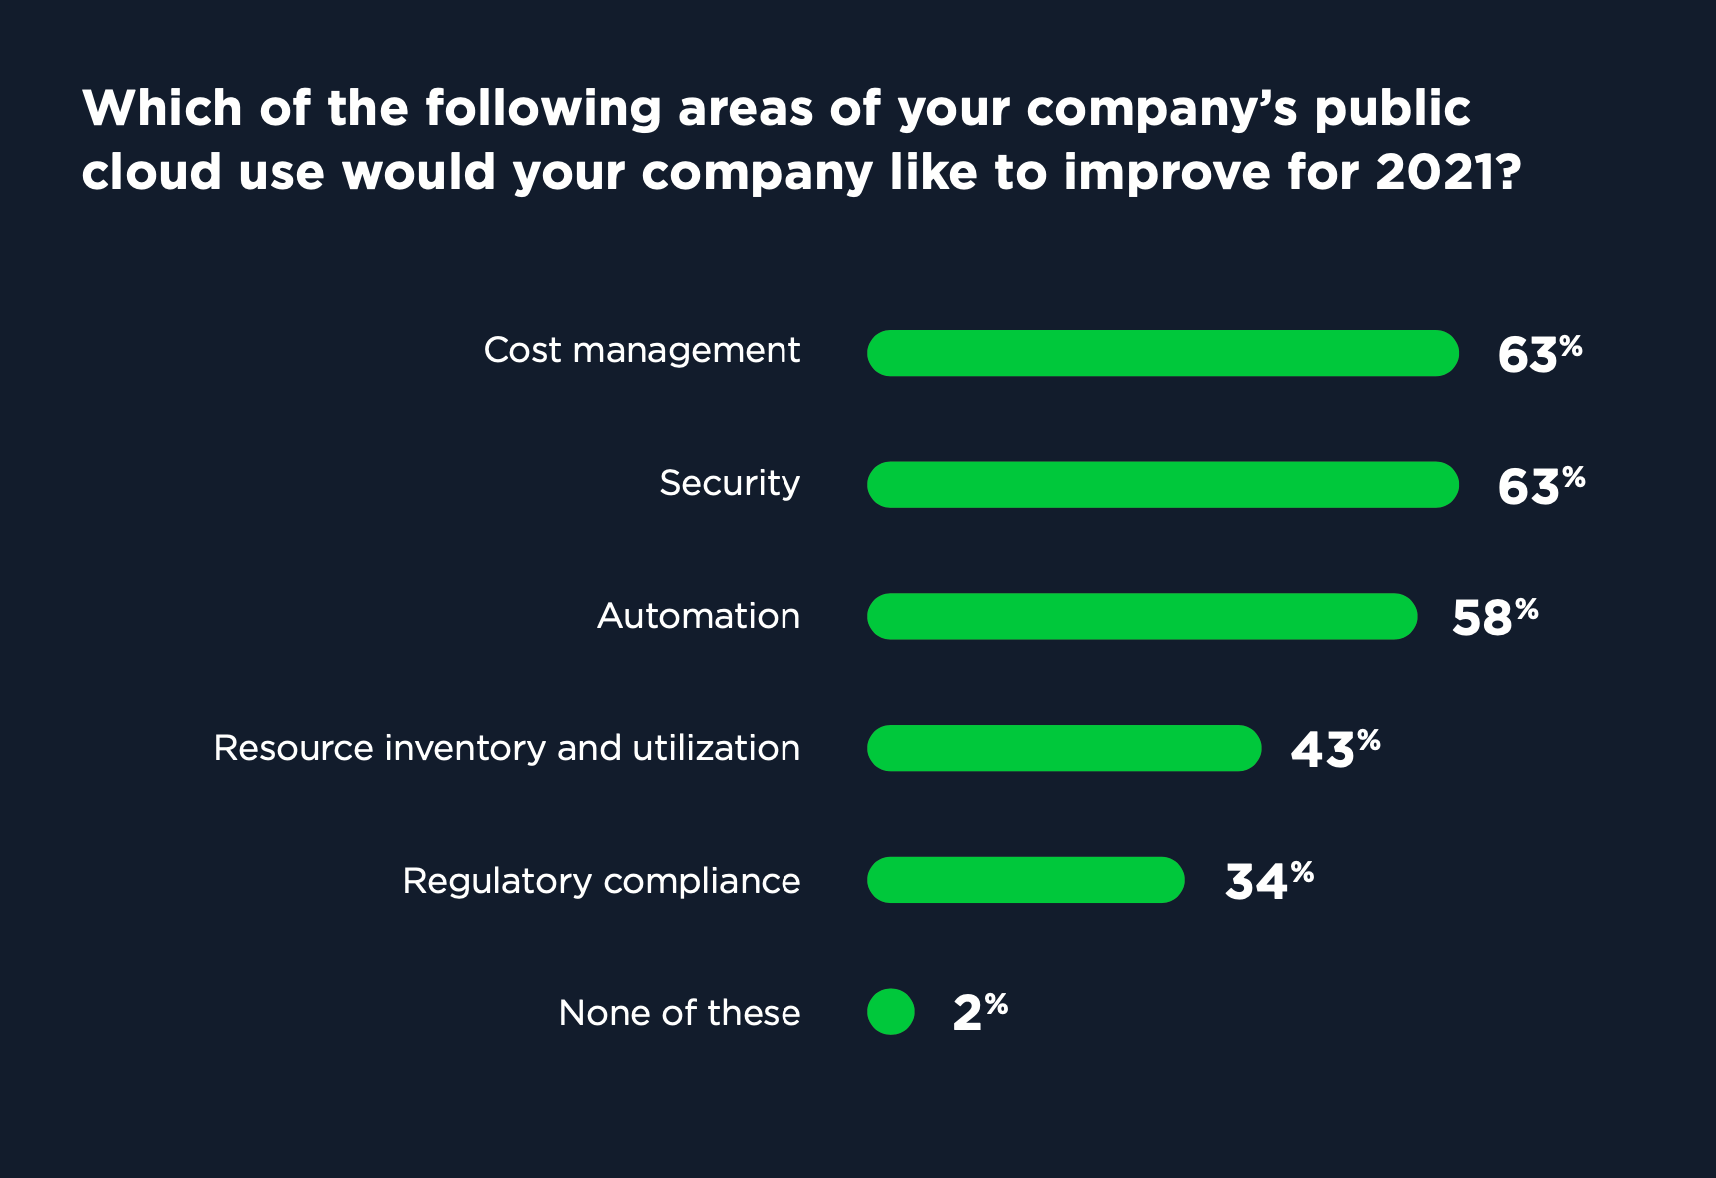 Top cloud concerns and areas of improvement for enterprises in 2021